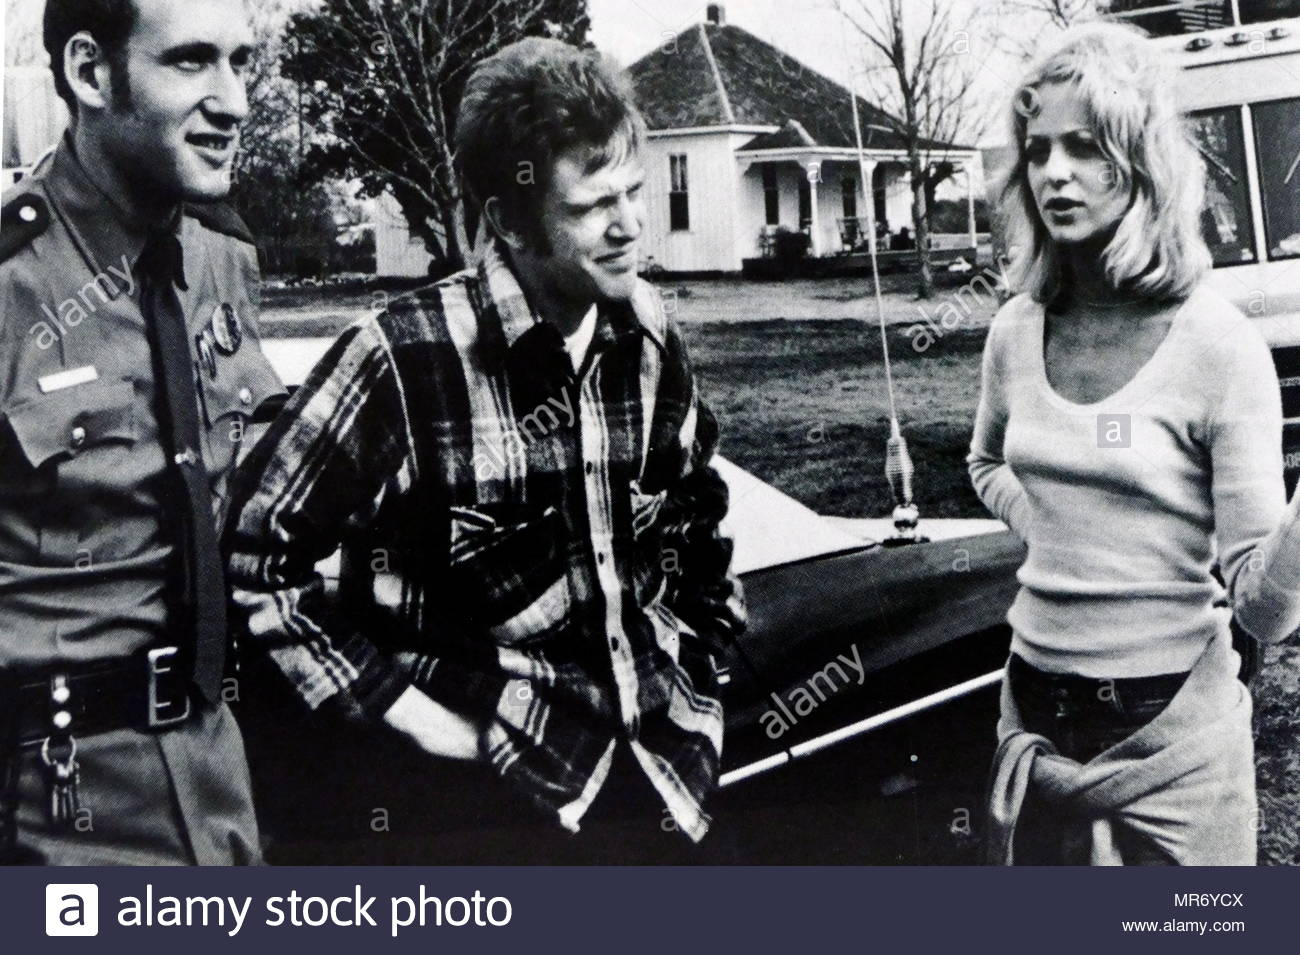 The Sugarland Express is a 1974 American crime drama film co-written and directed by Steven Spielberg in his theatrical feature directorial debut. It stars Goldie Hawn, Ben Johnson, William Atherton, and Michael Sacks. - Stock Image